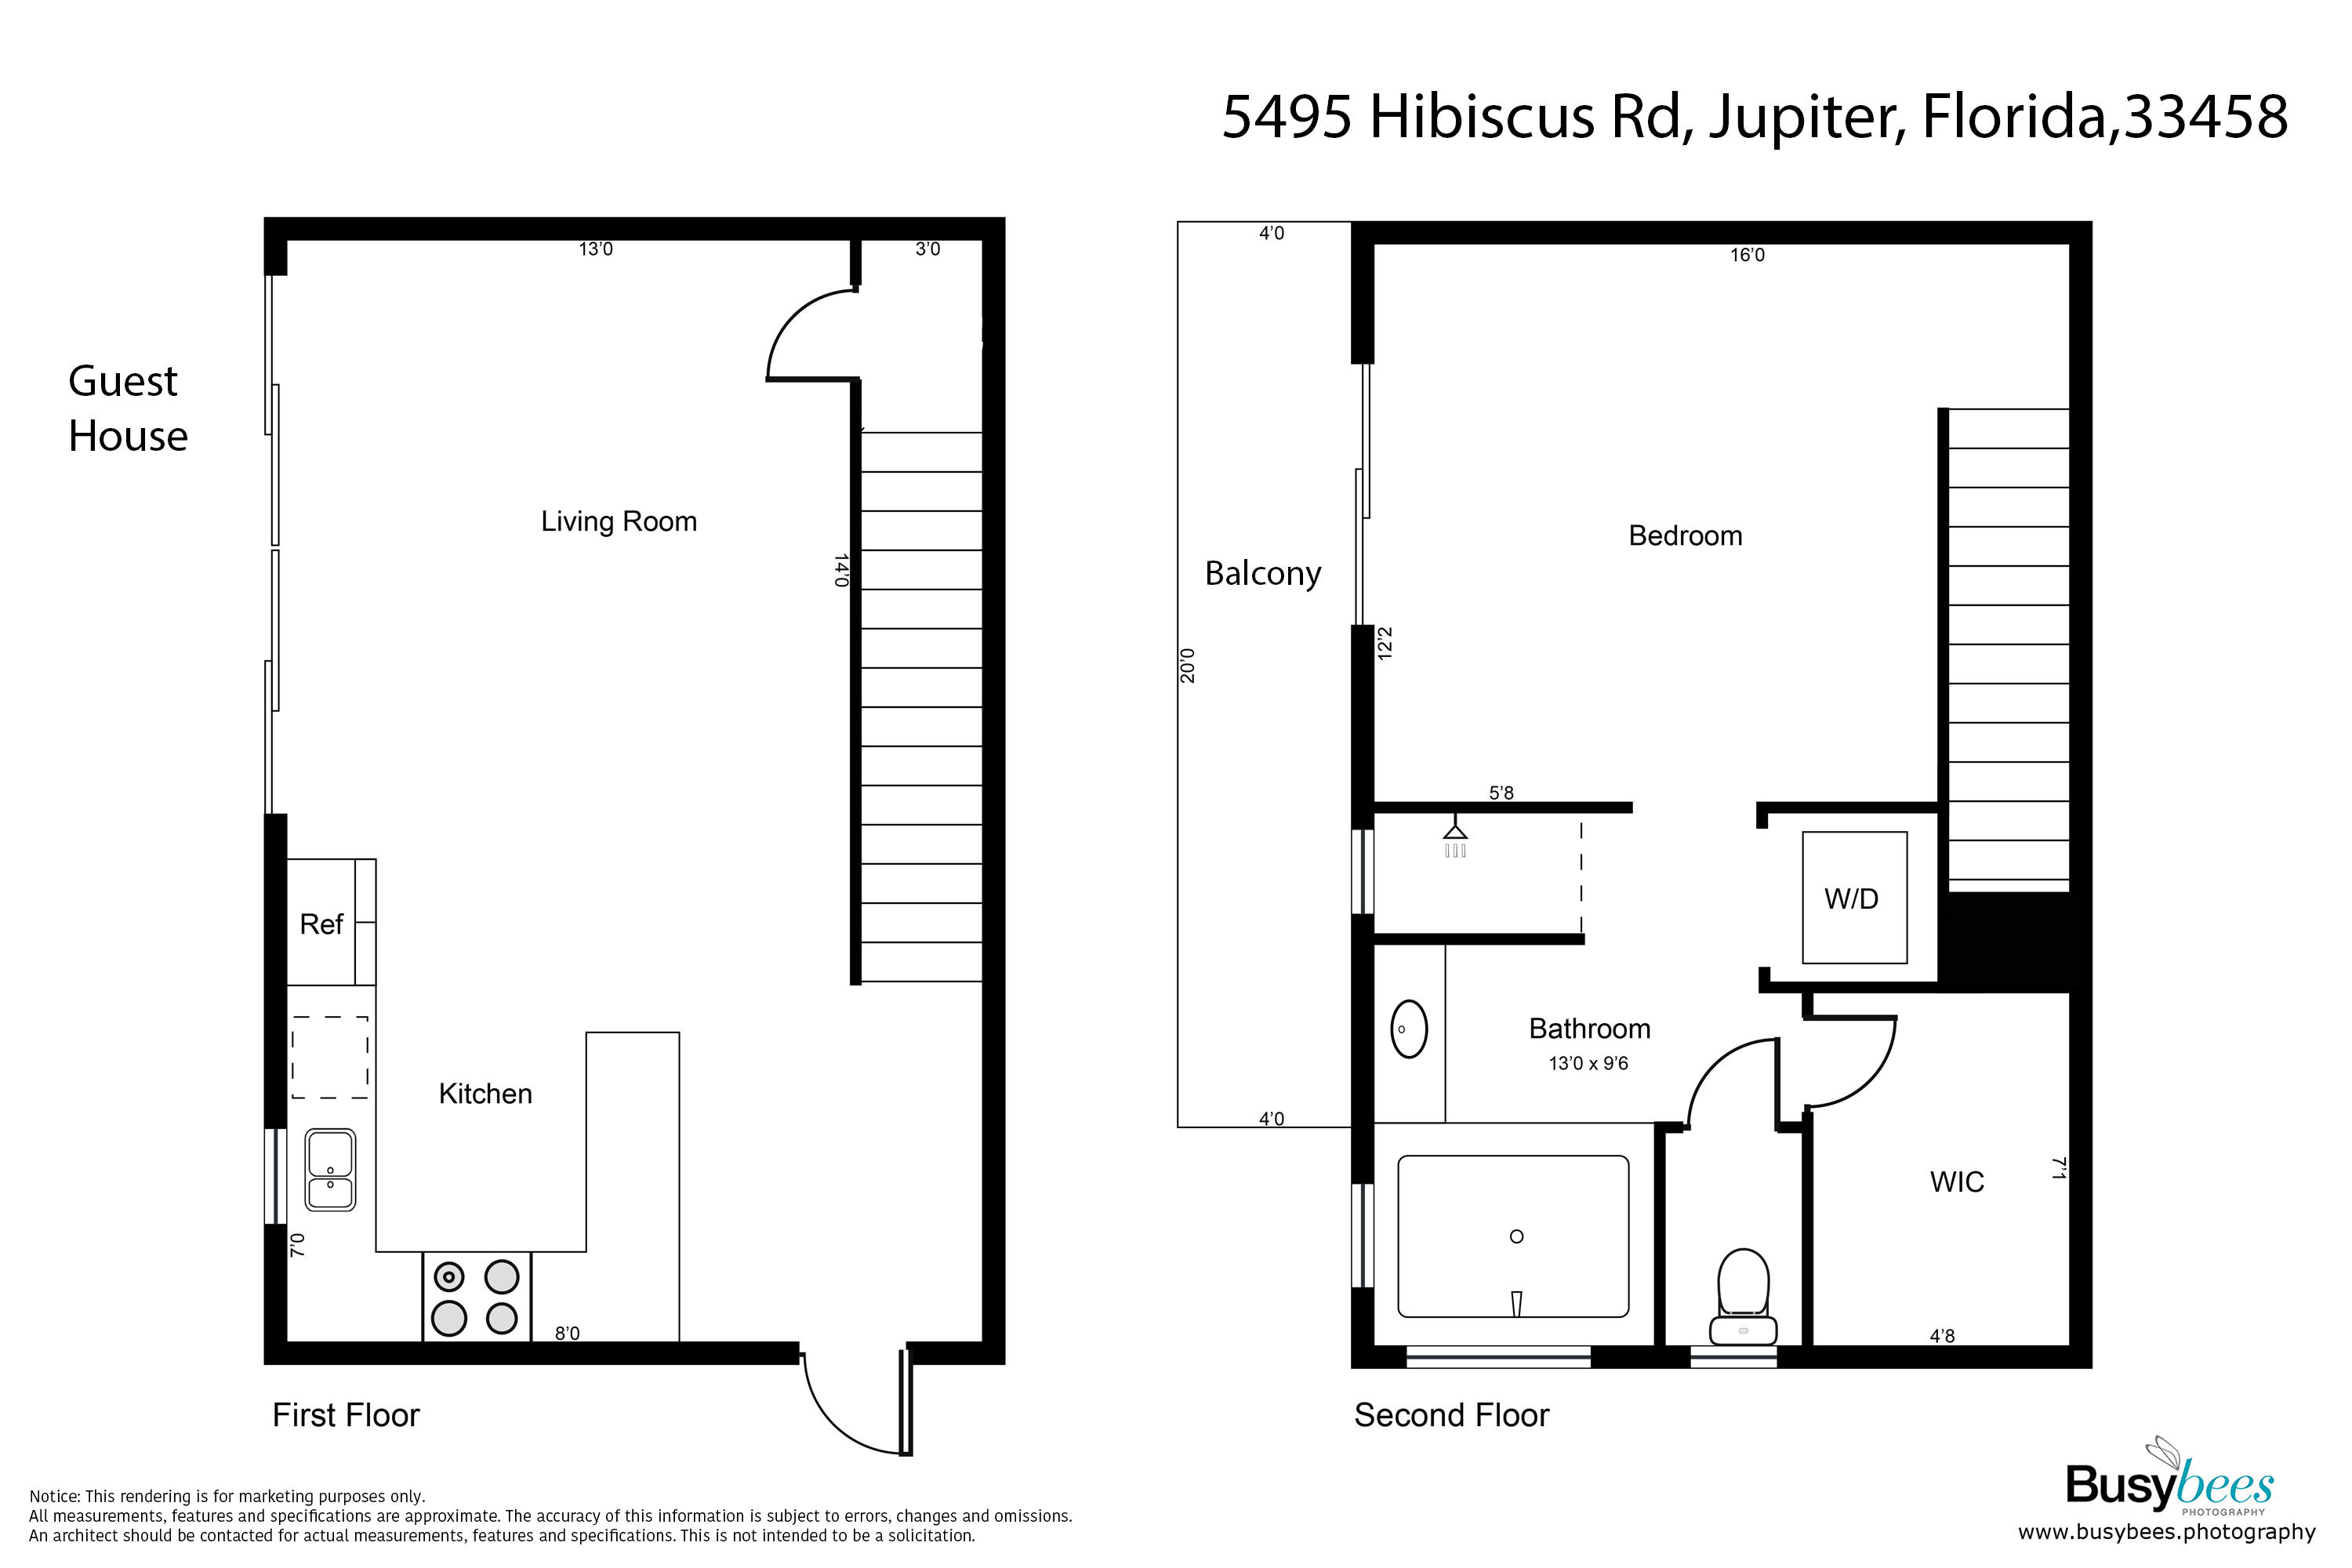 5495 Hibiscus Road, Jupiter, Floor Plan